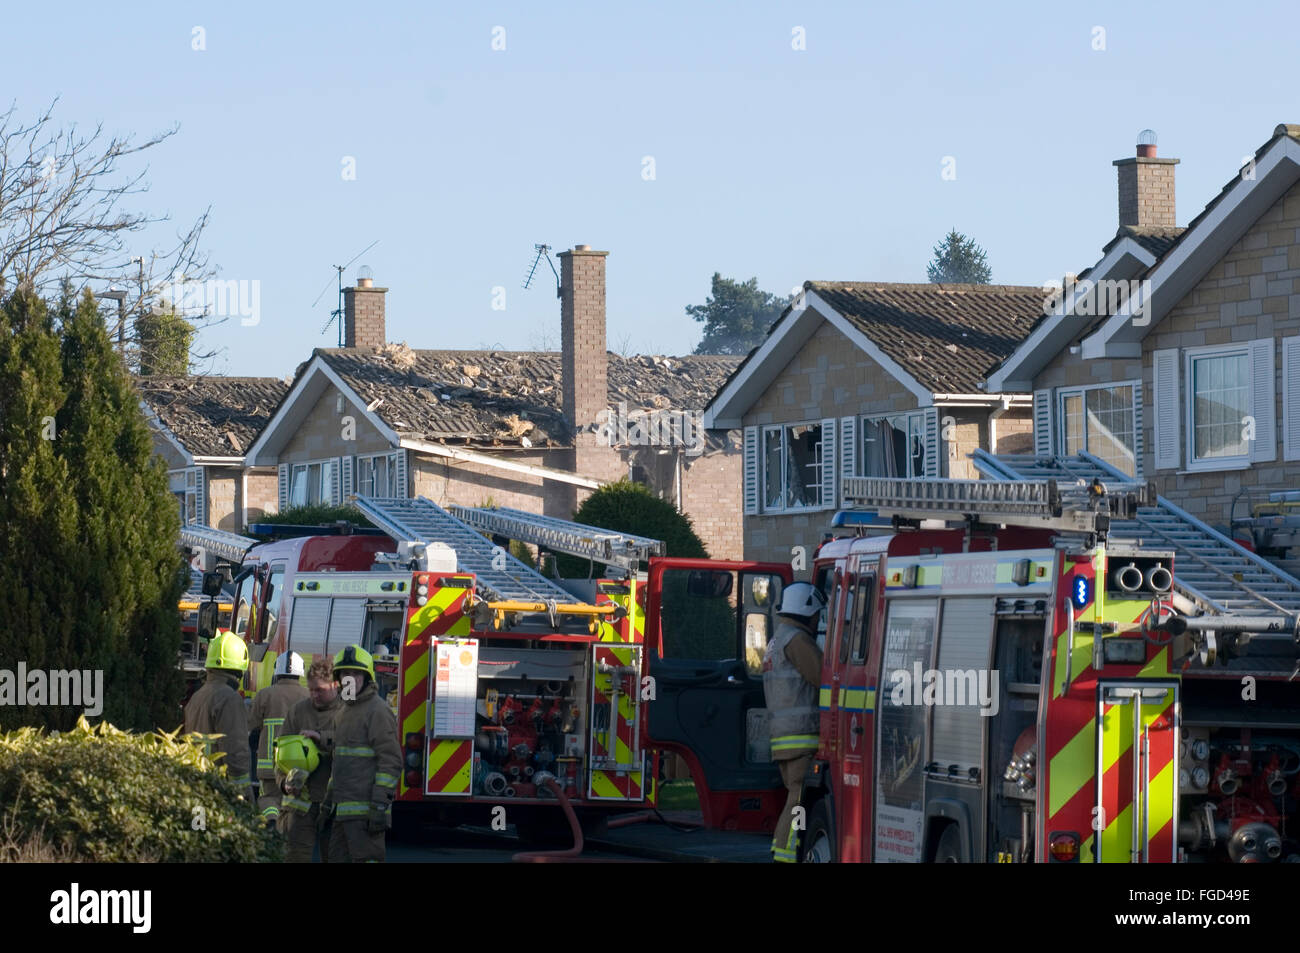 suspected gas leak explosion at a house in springwood road haxby near york heavy damage caused to neighbouring properties - Stock Image